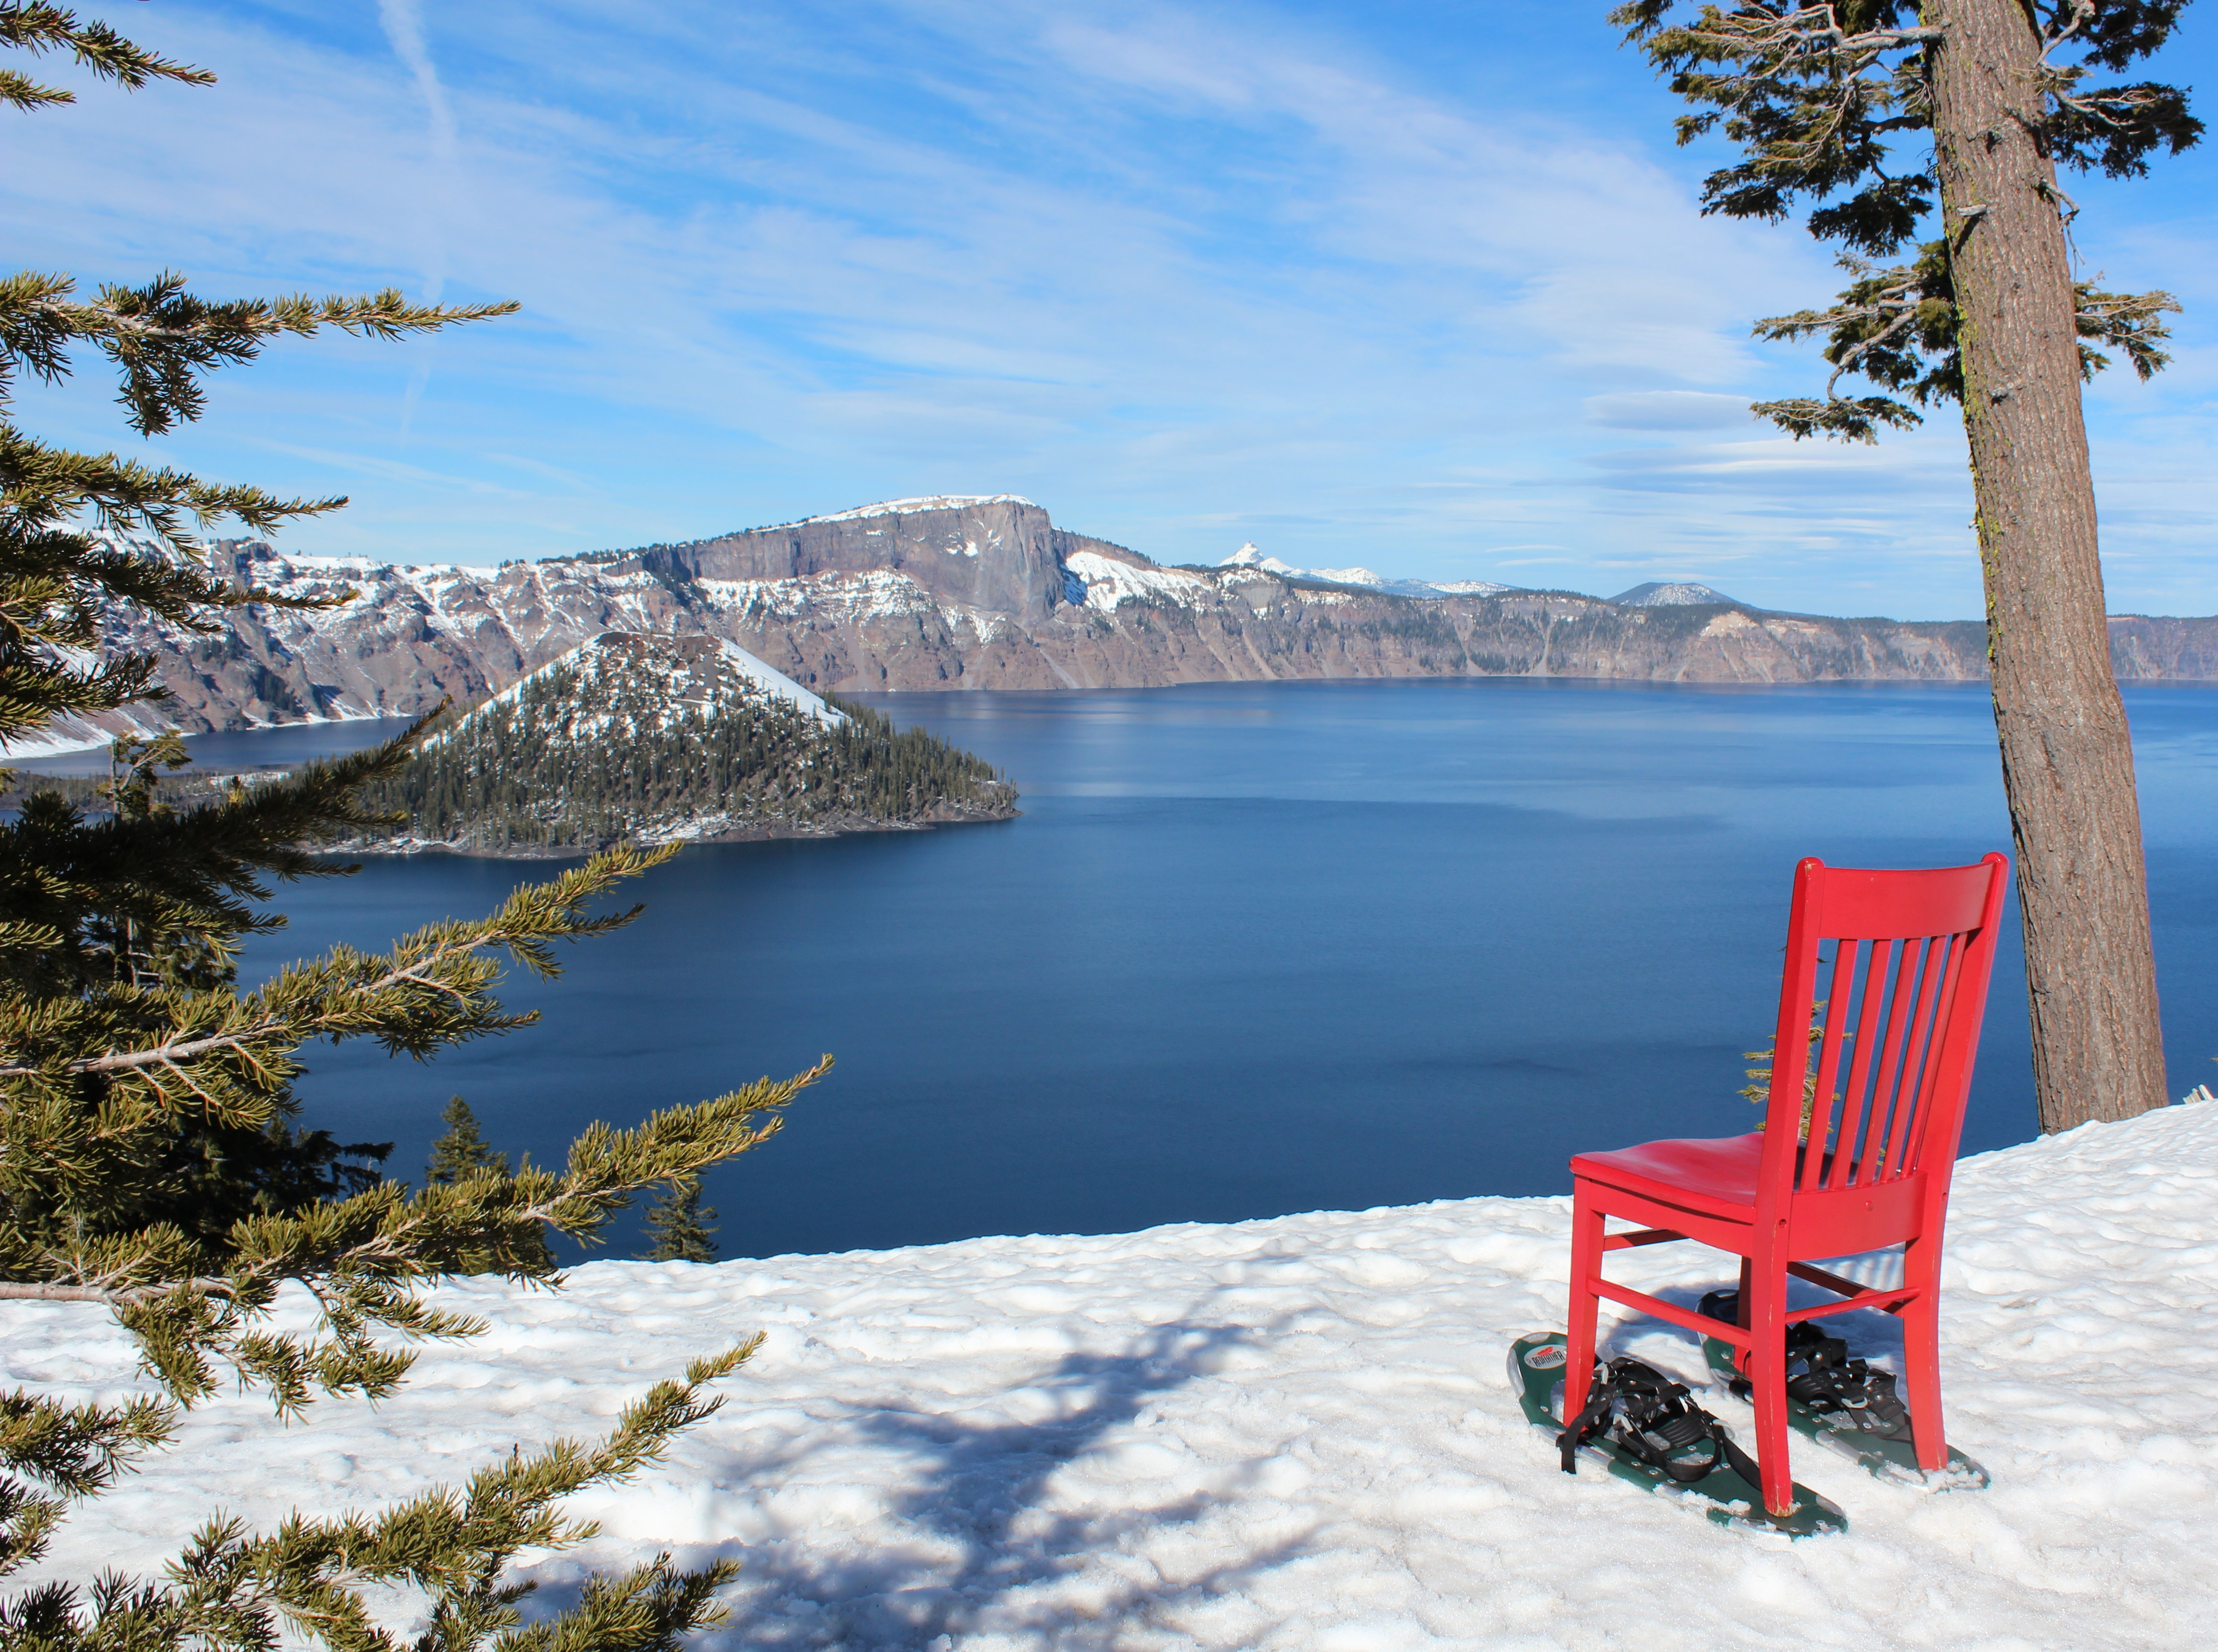 The Prospect Hotel and Crater Lake